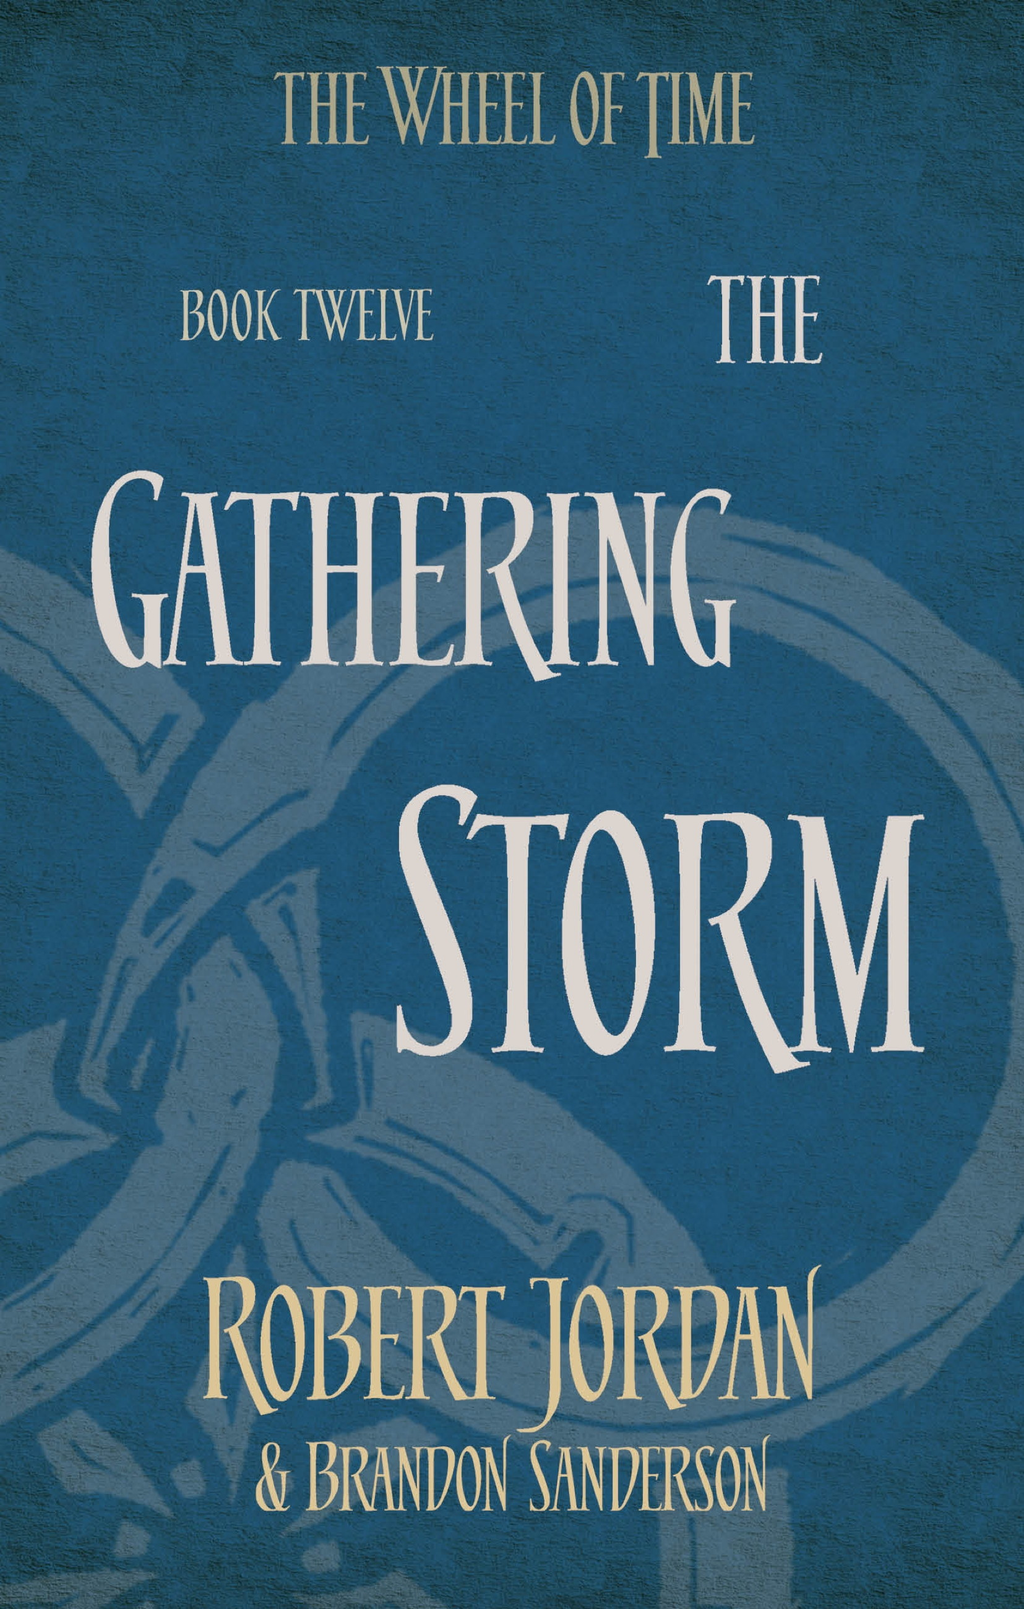 The Gathering Storm Book 12 of the Wheel of Time